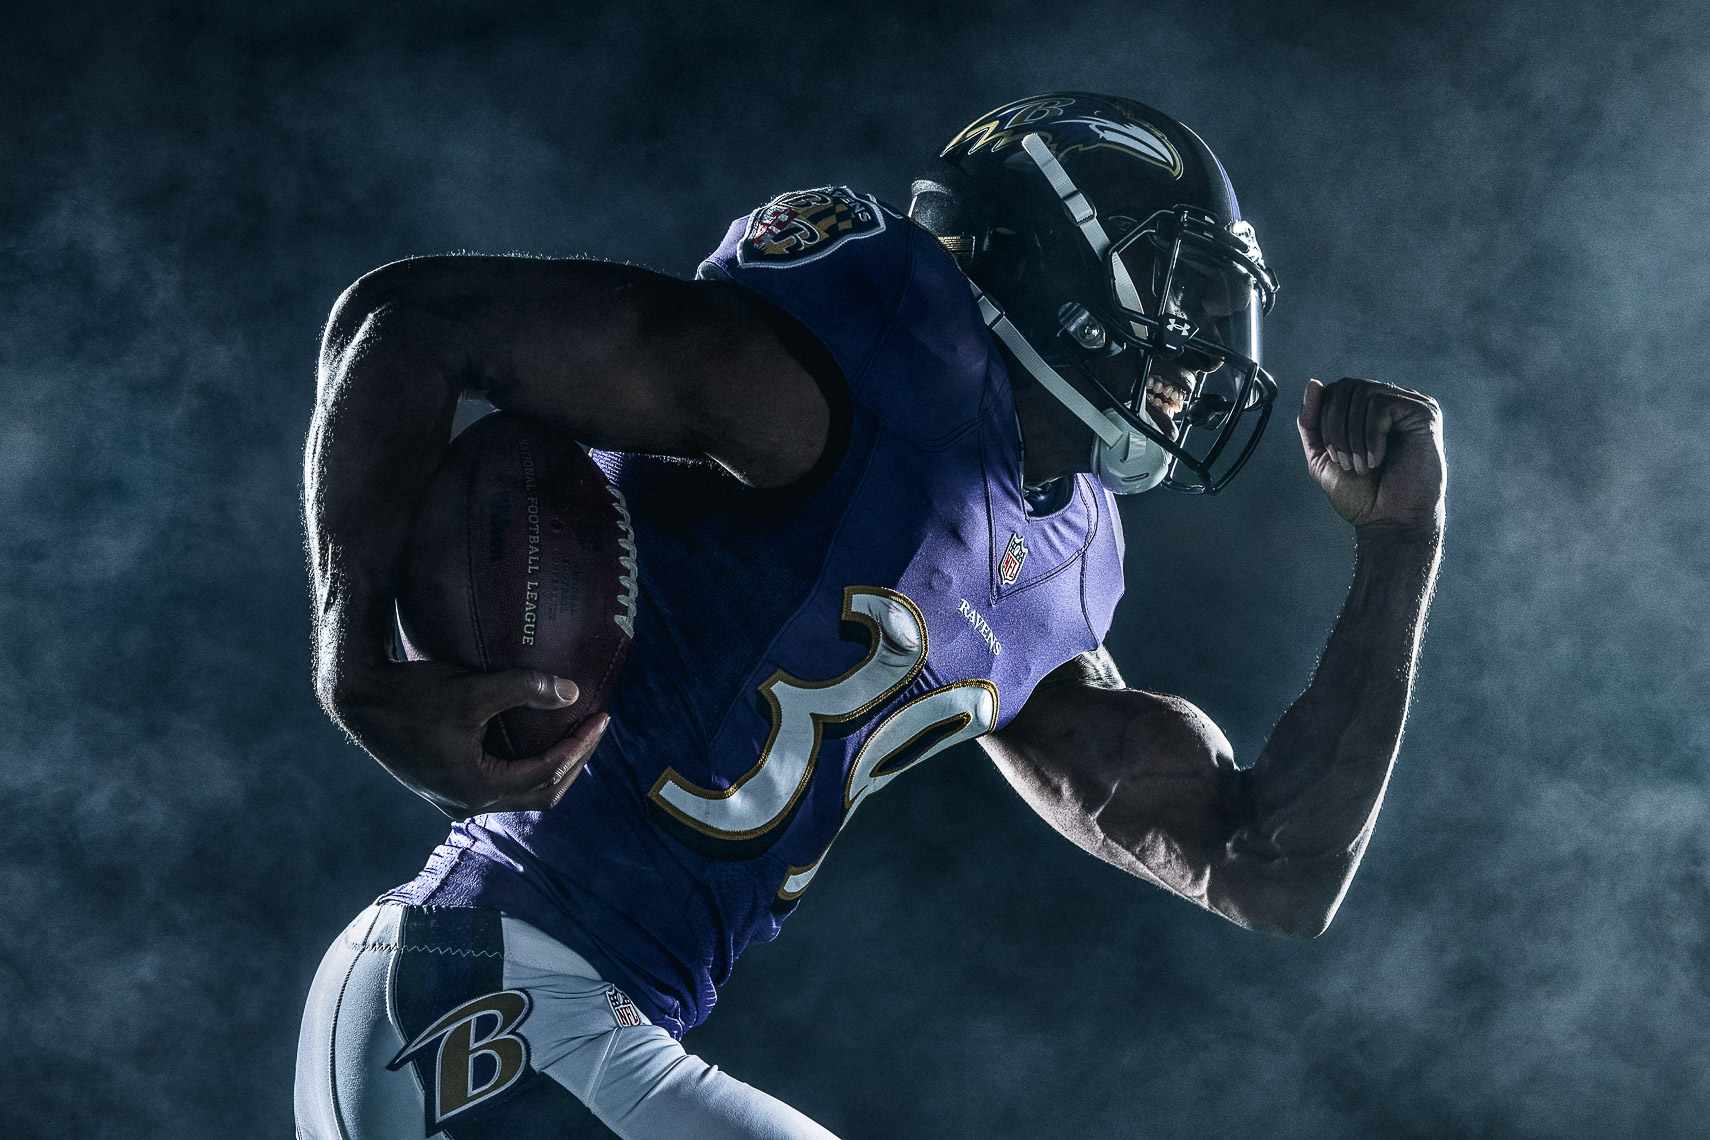 athlete portrait NFL draft pick Baltimore Ravens football team NFL athlete creative studio lighting portrait photographer commercial portrait photographer Baltimore Maryland